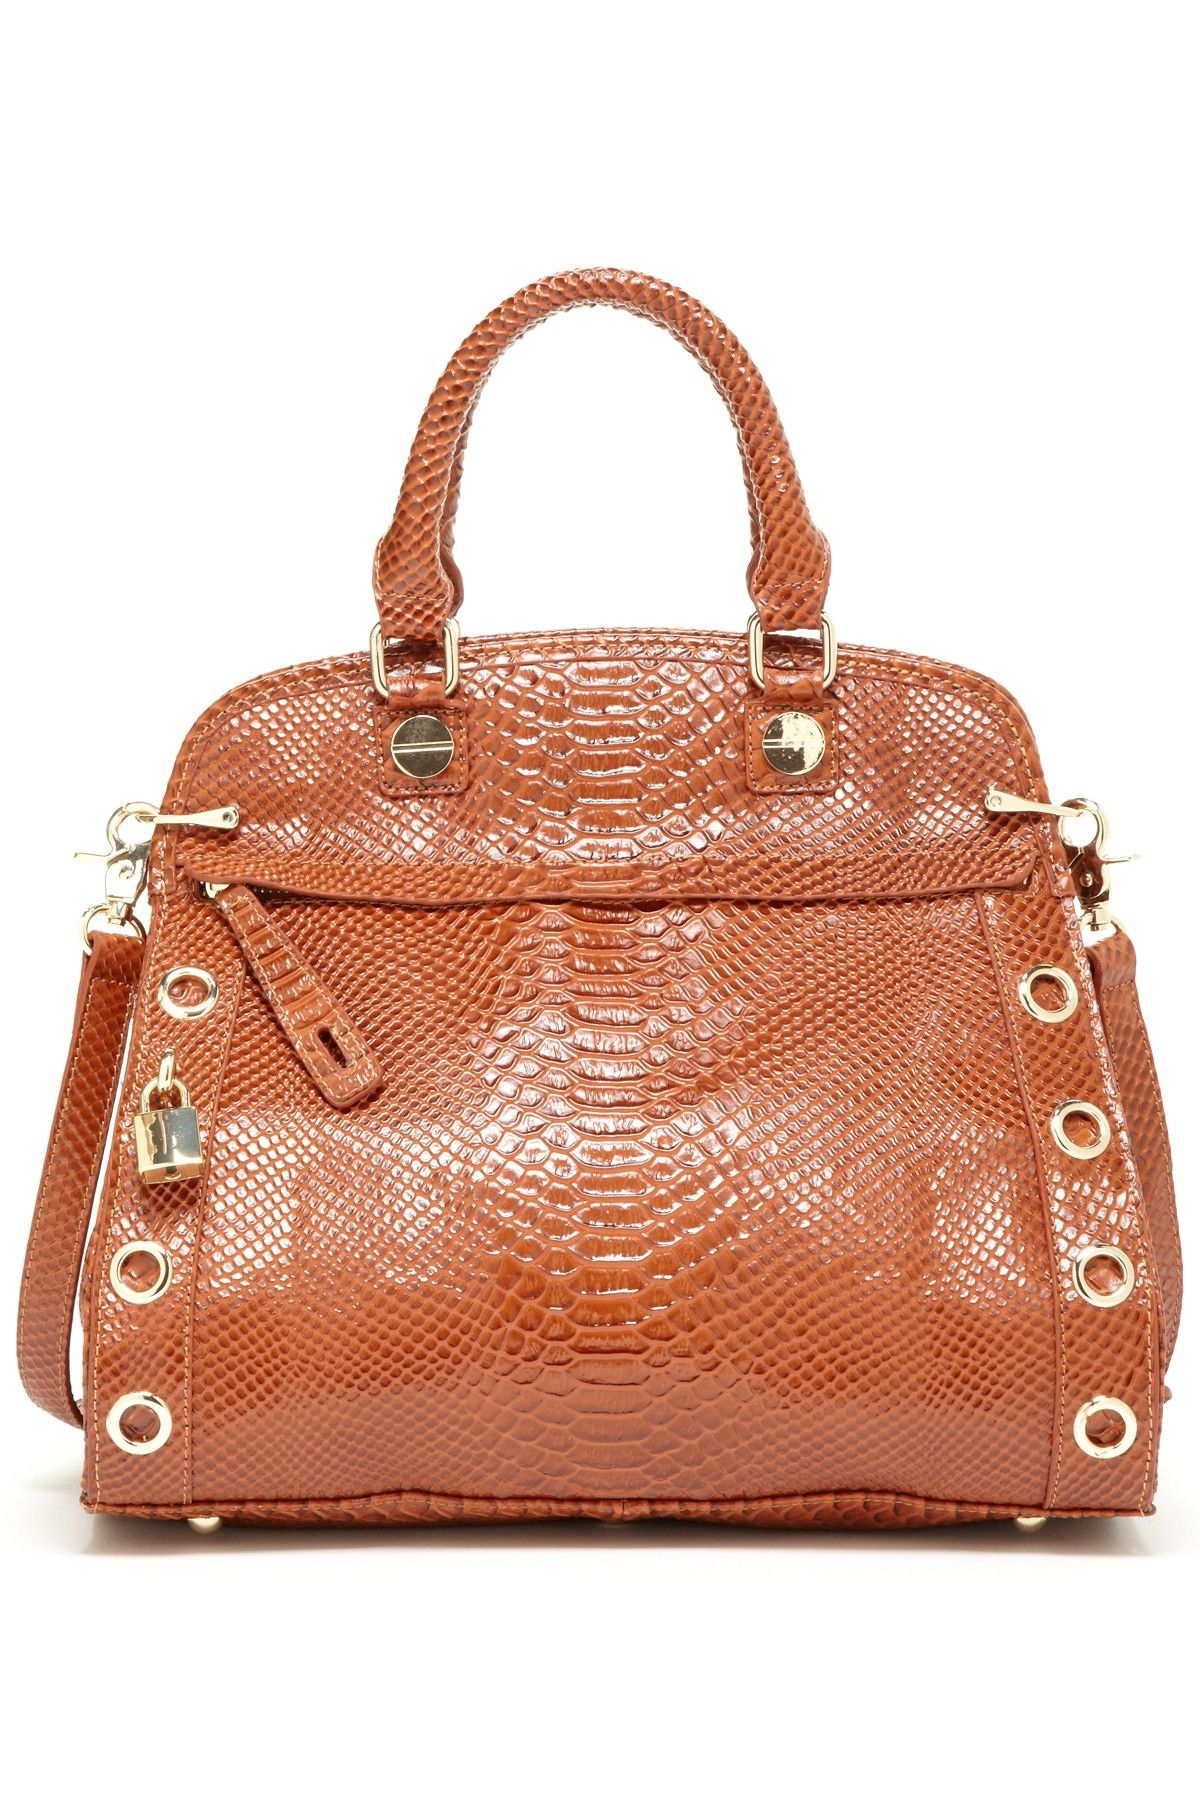 51d4c500a2b discount GUCCI purses online collection, free shipping cheap burberry  handbags